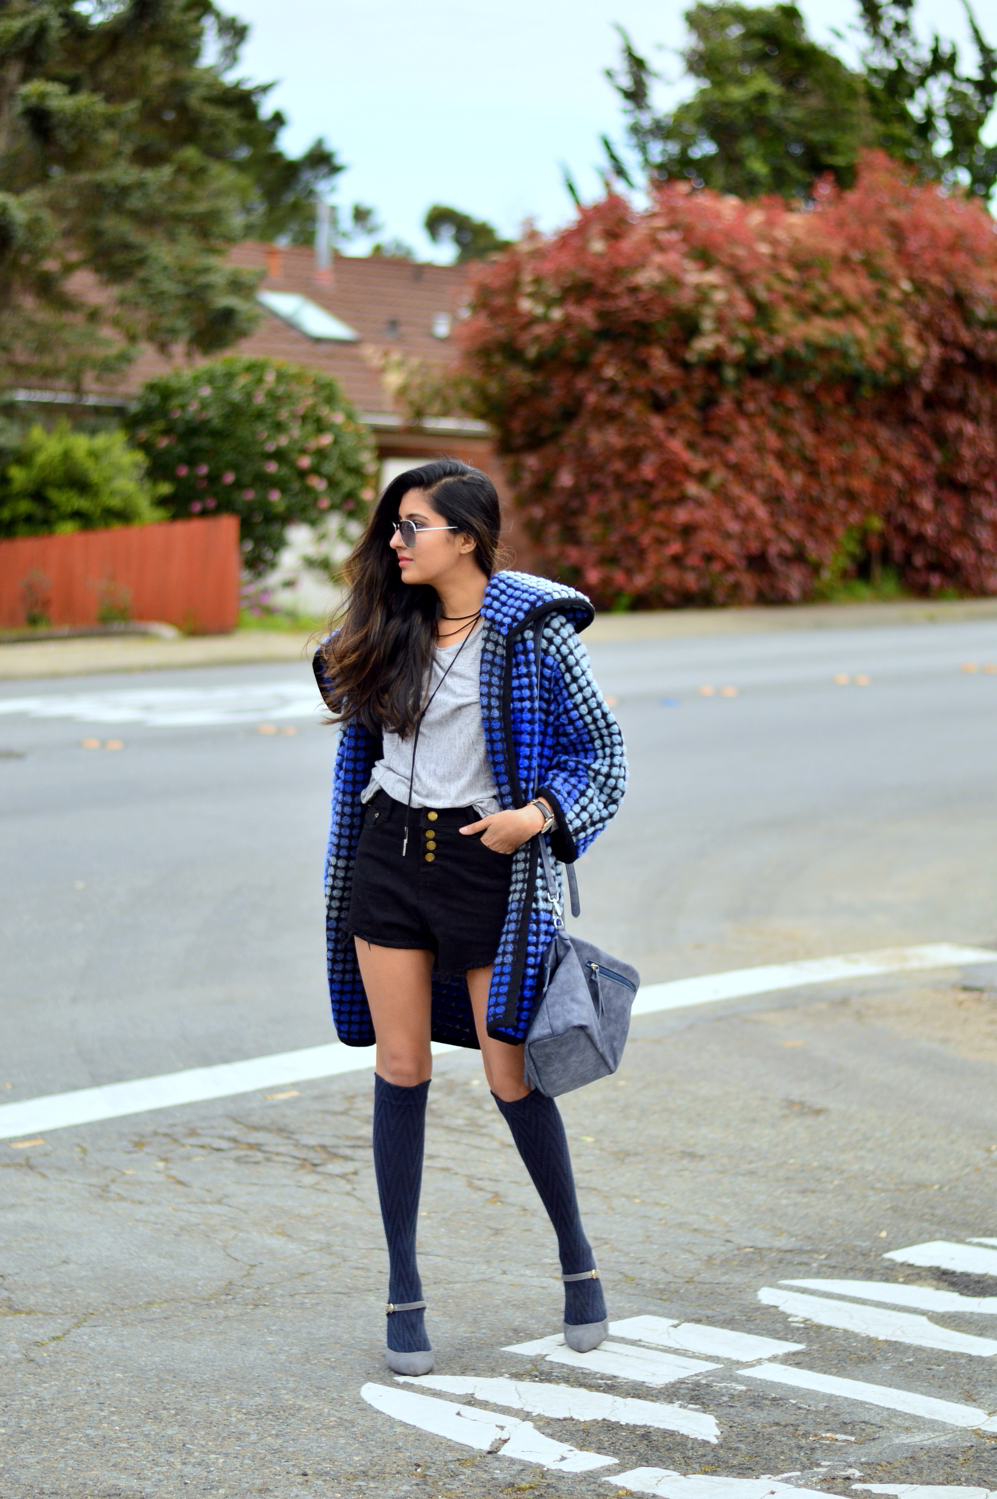 ombre-polka-dots-blue-statement-coat-spring-layers-outfit-blogger-style 3